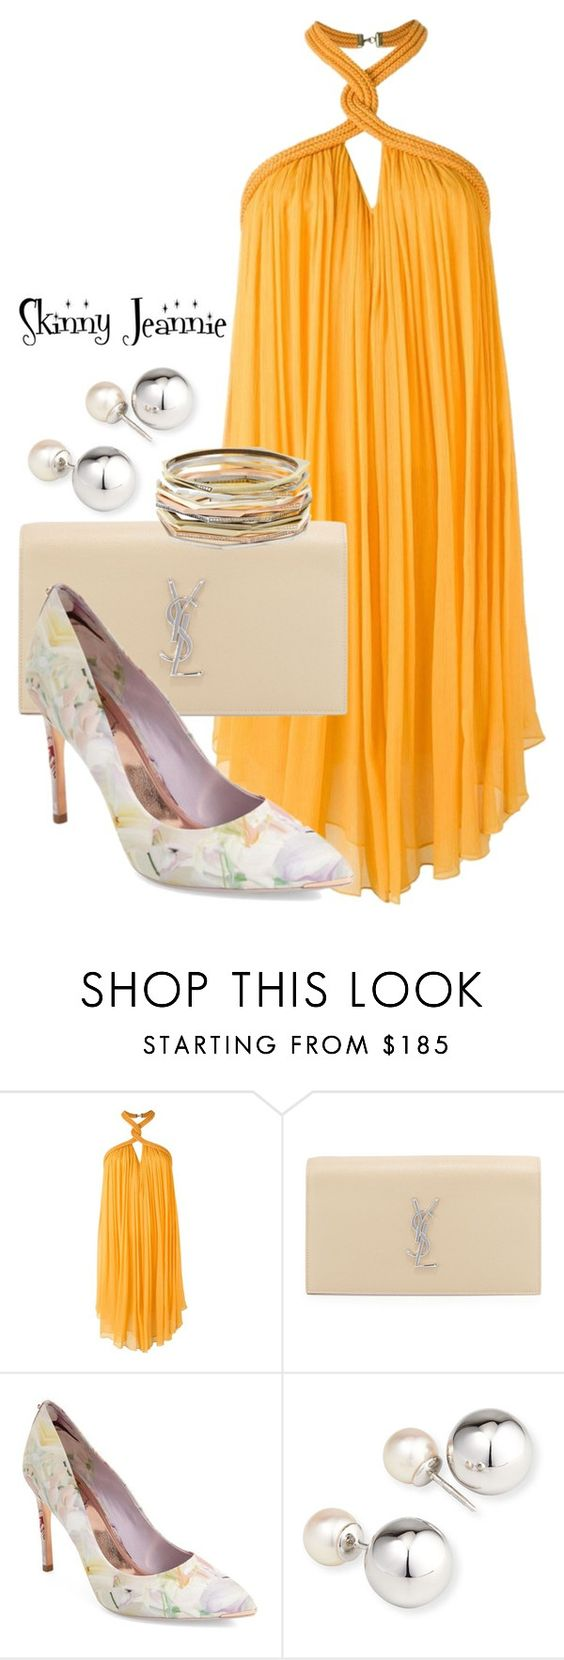 """""""Untitled #1934"""" by skinny-jeannie ❤ liked on Polyvore featuring Jay Ahr, Yves Saint Laurent, Ted Baker, Yoko London and Kendra Scott"""